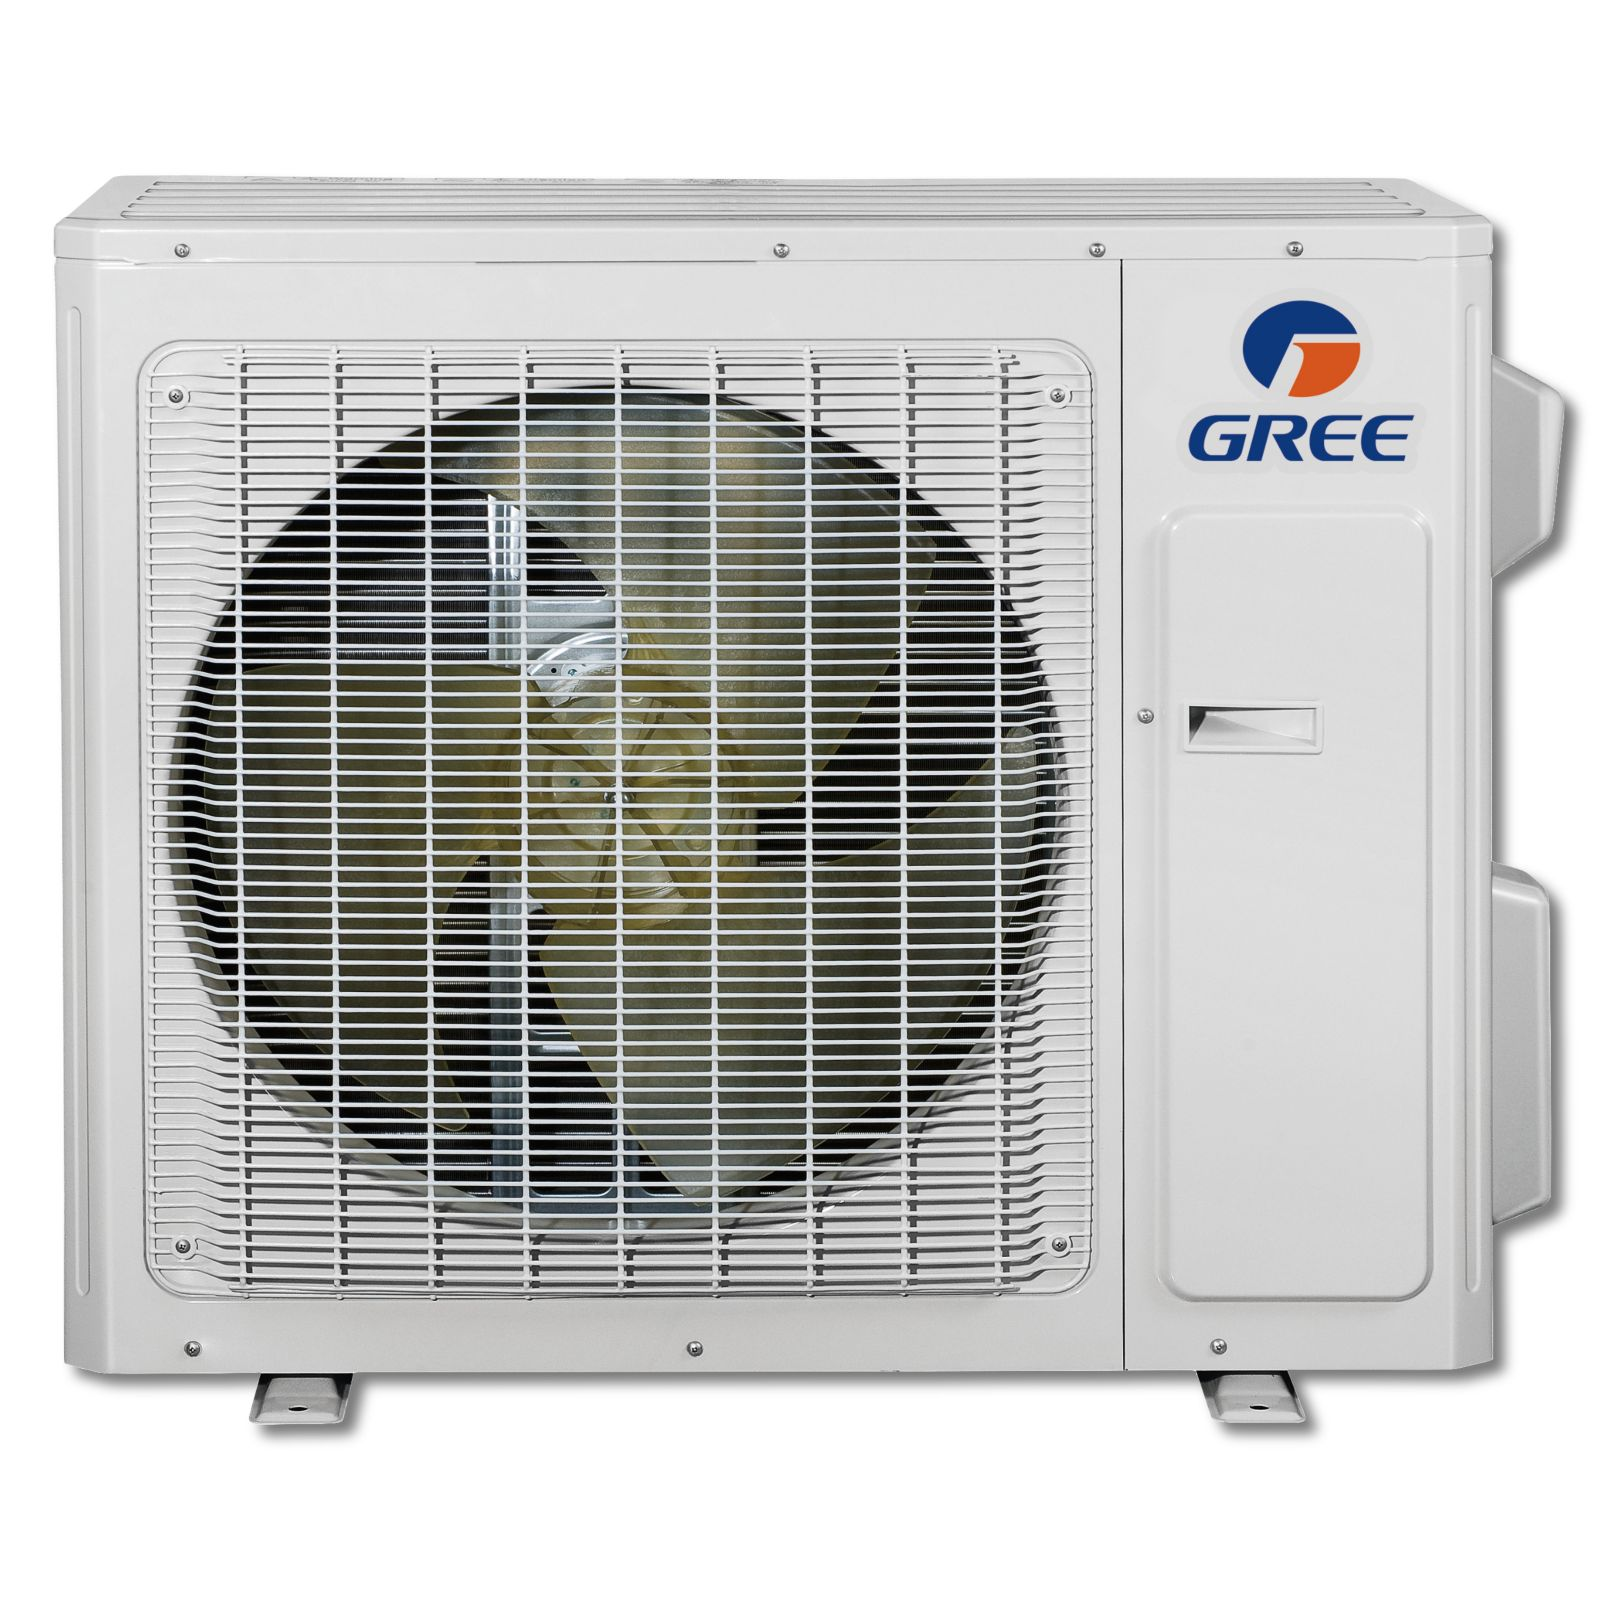 GREE TERRA24HP230V1AO - 2 Ton 21 SEER TERRA Ductless Mini-Split Heat Pump 208-230 V